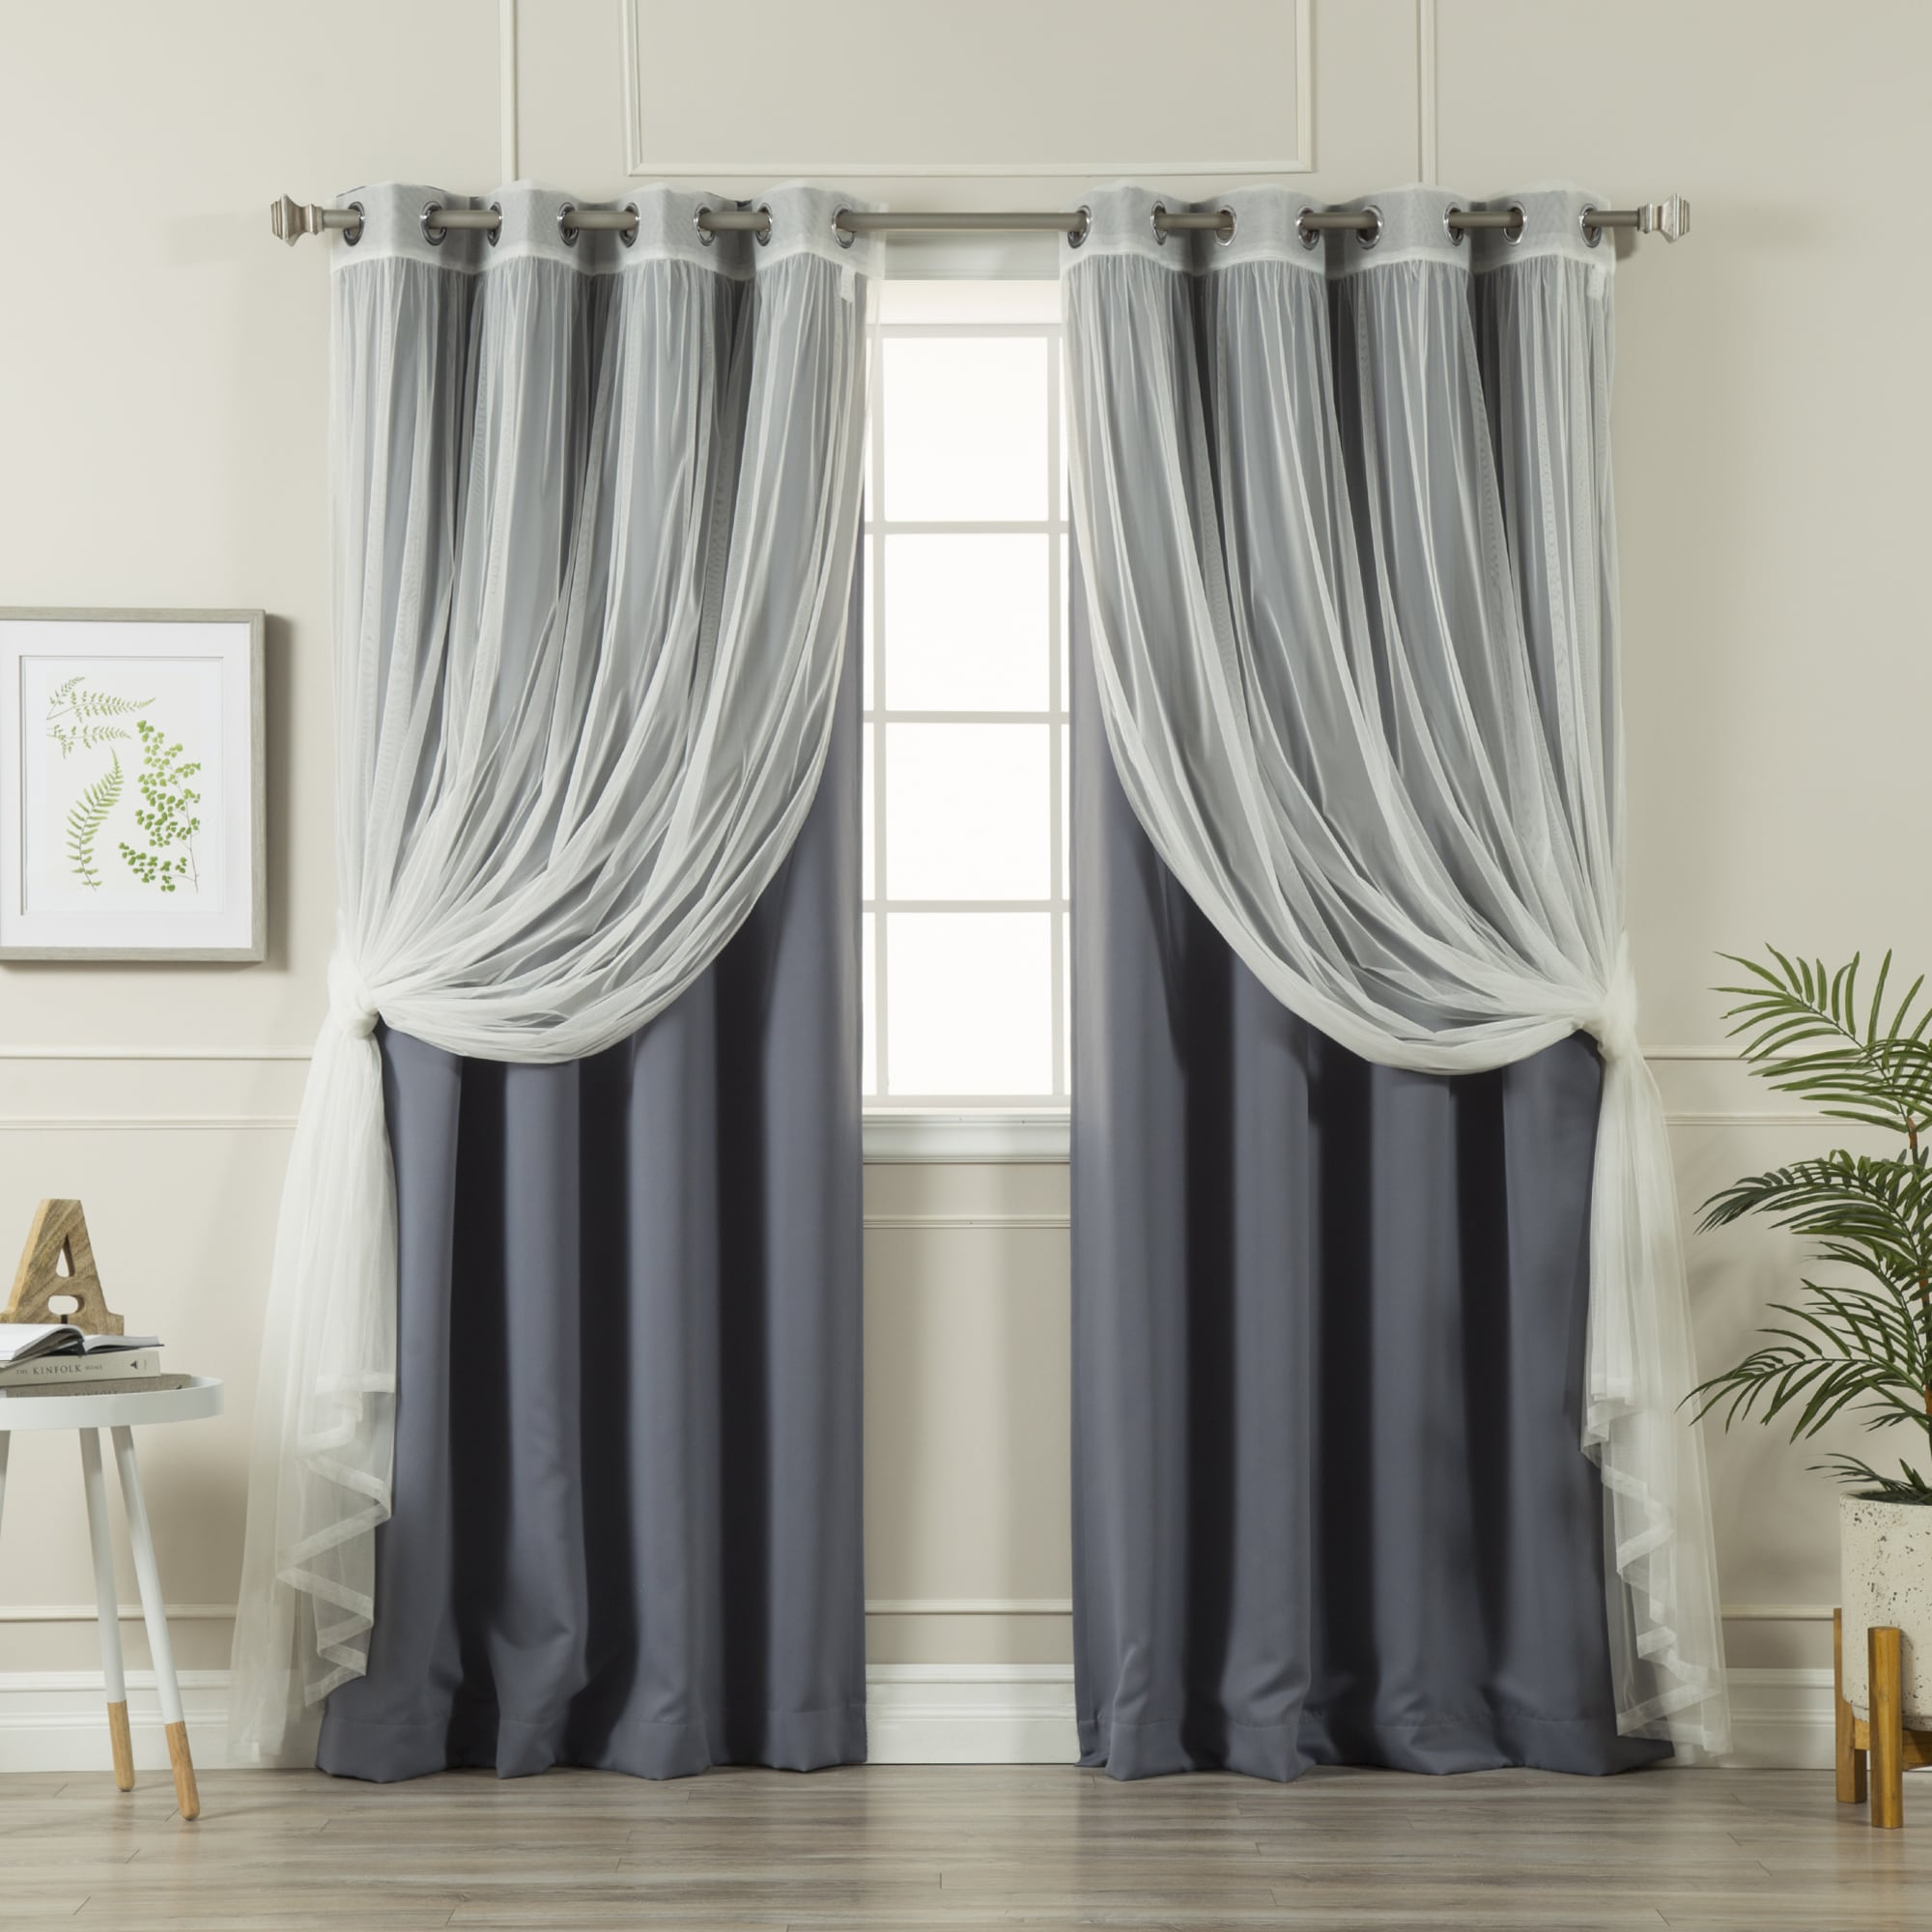 Aurora Home MIX & Match Curtains Blackout and Tulle Lace ...